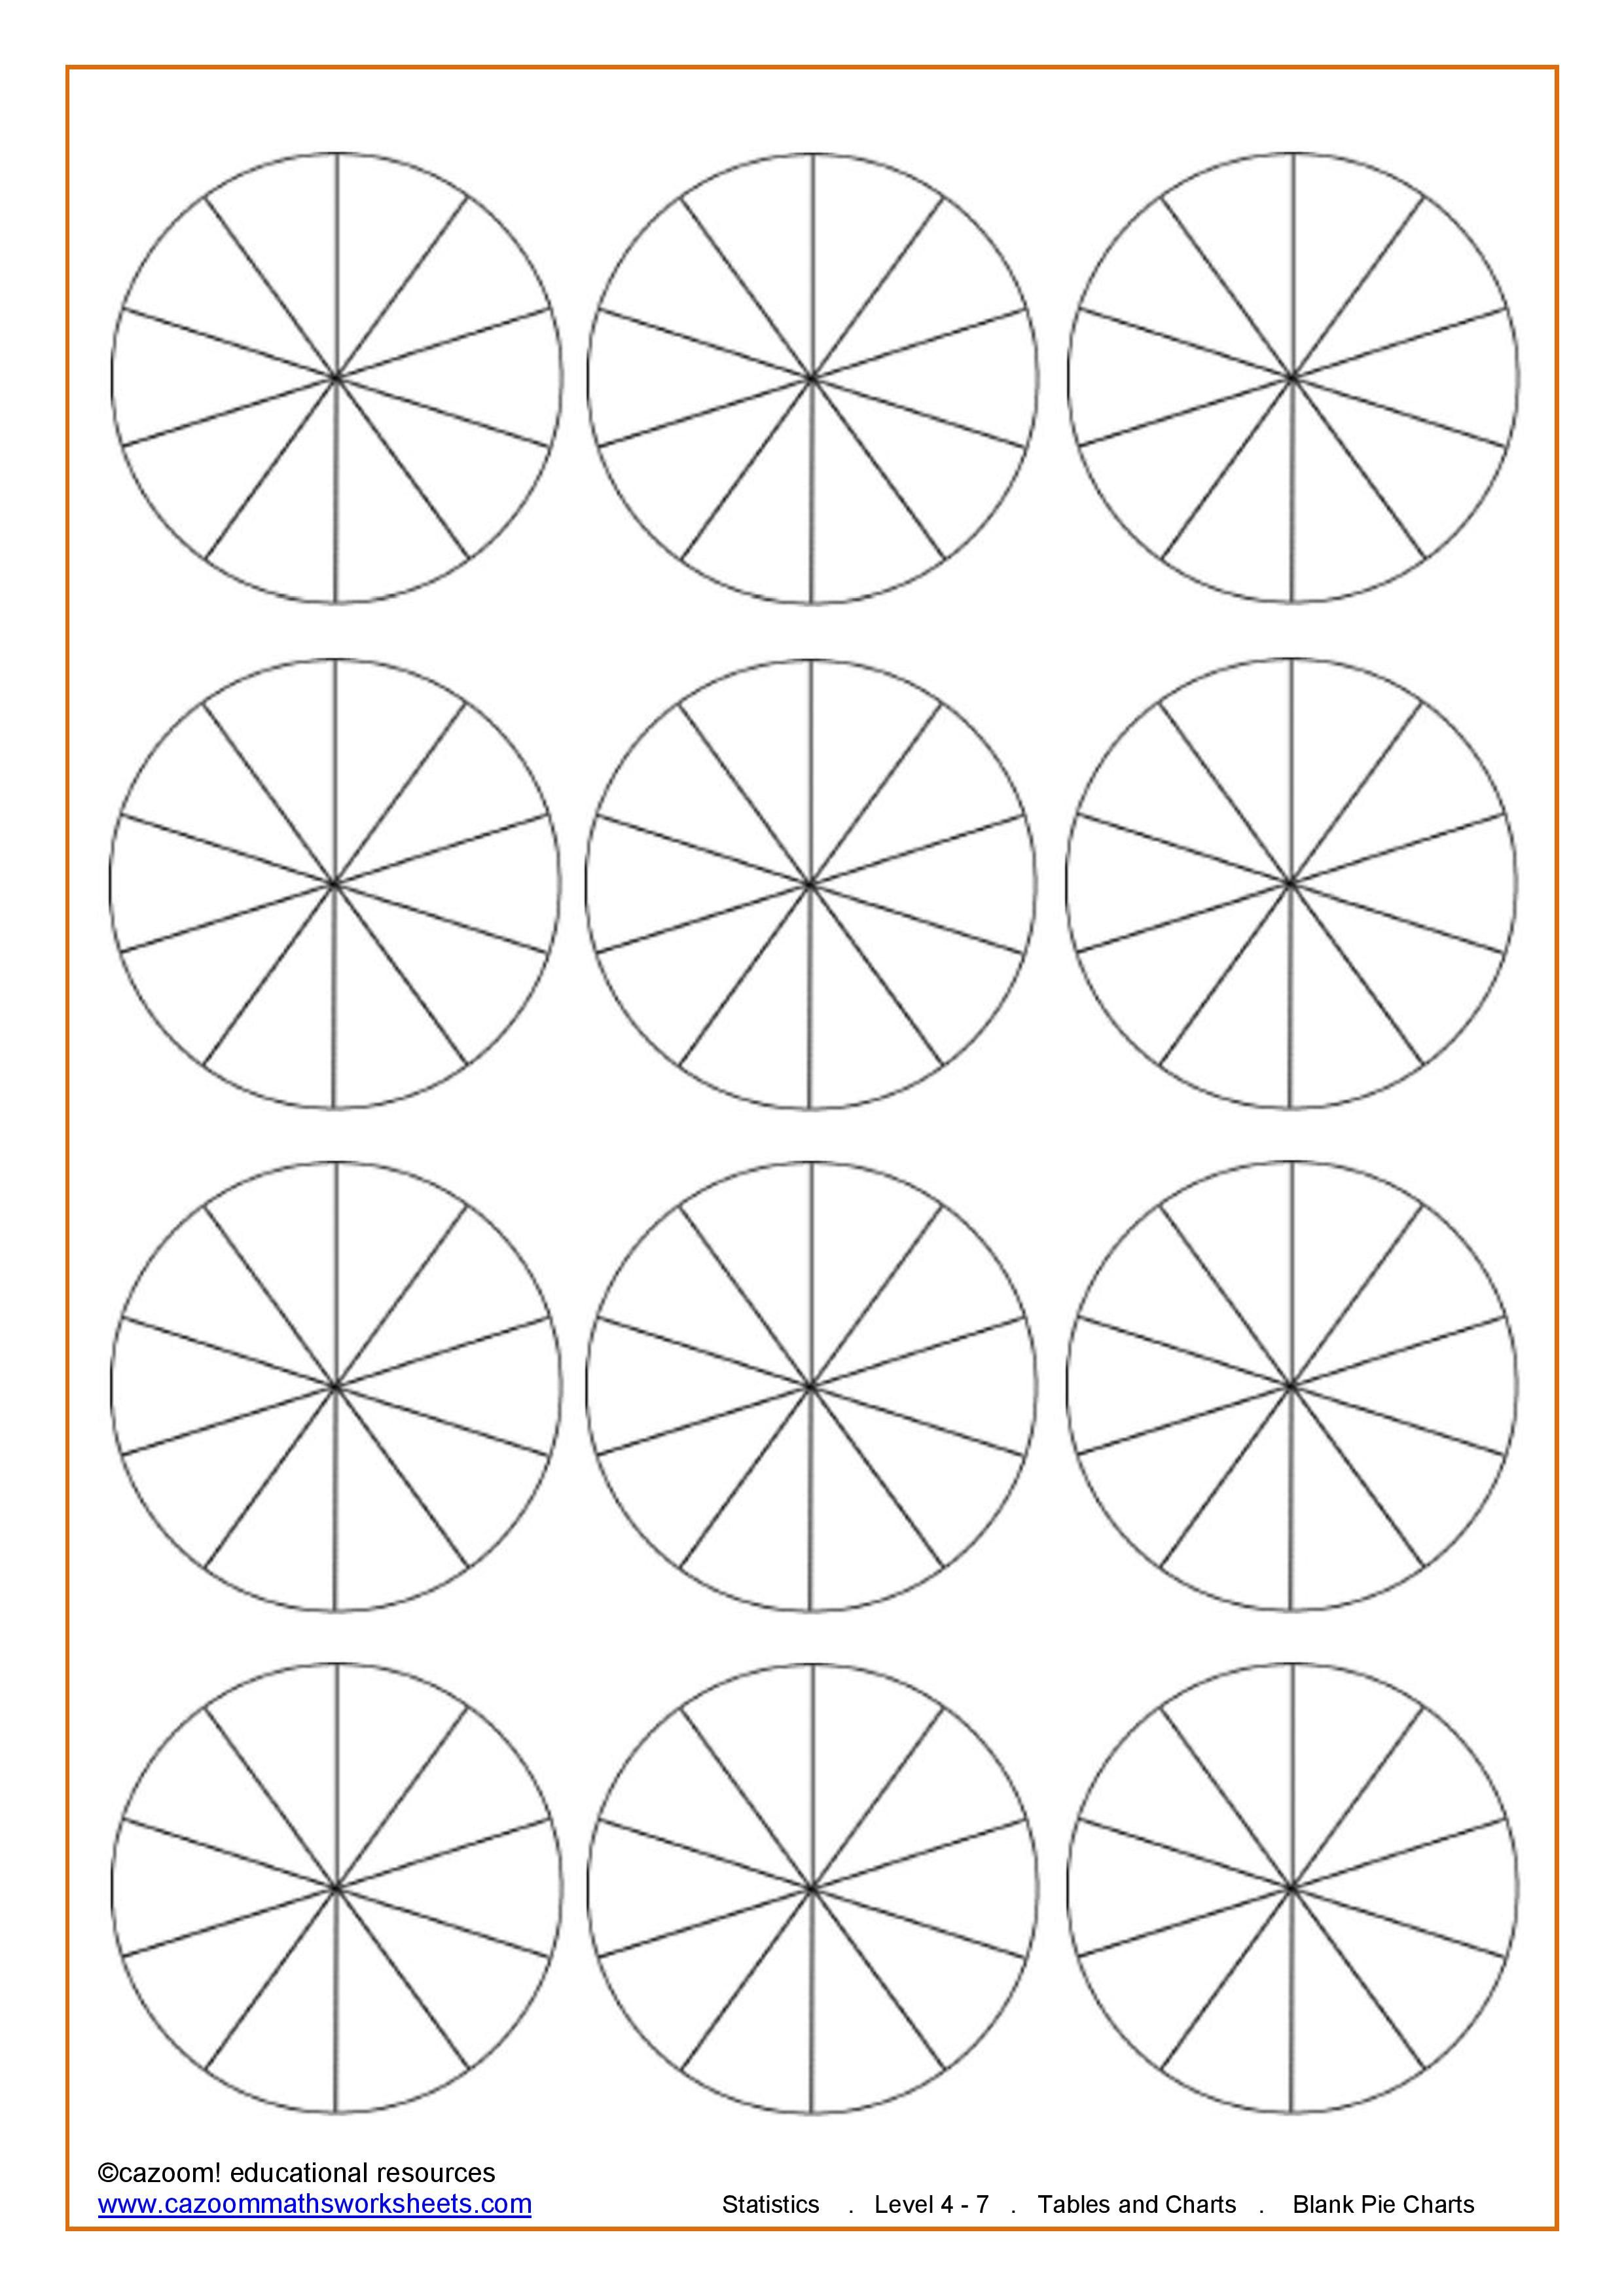 Worksheets Pie Chart Worksheets blank pie charts 10 sections school pinterest sections